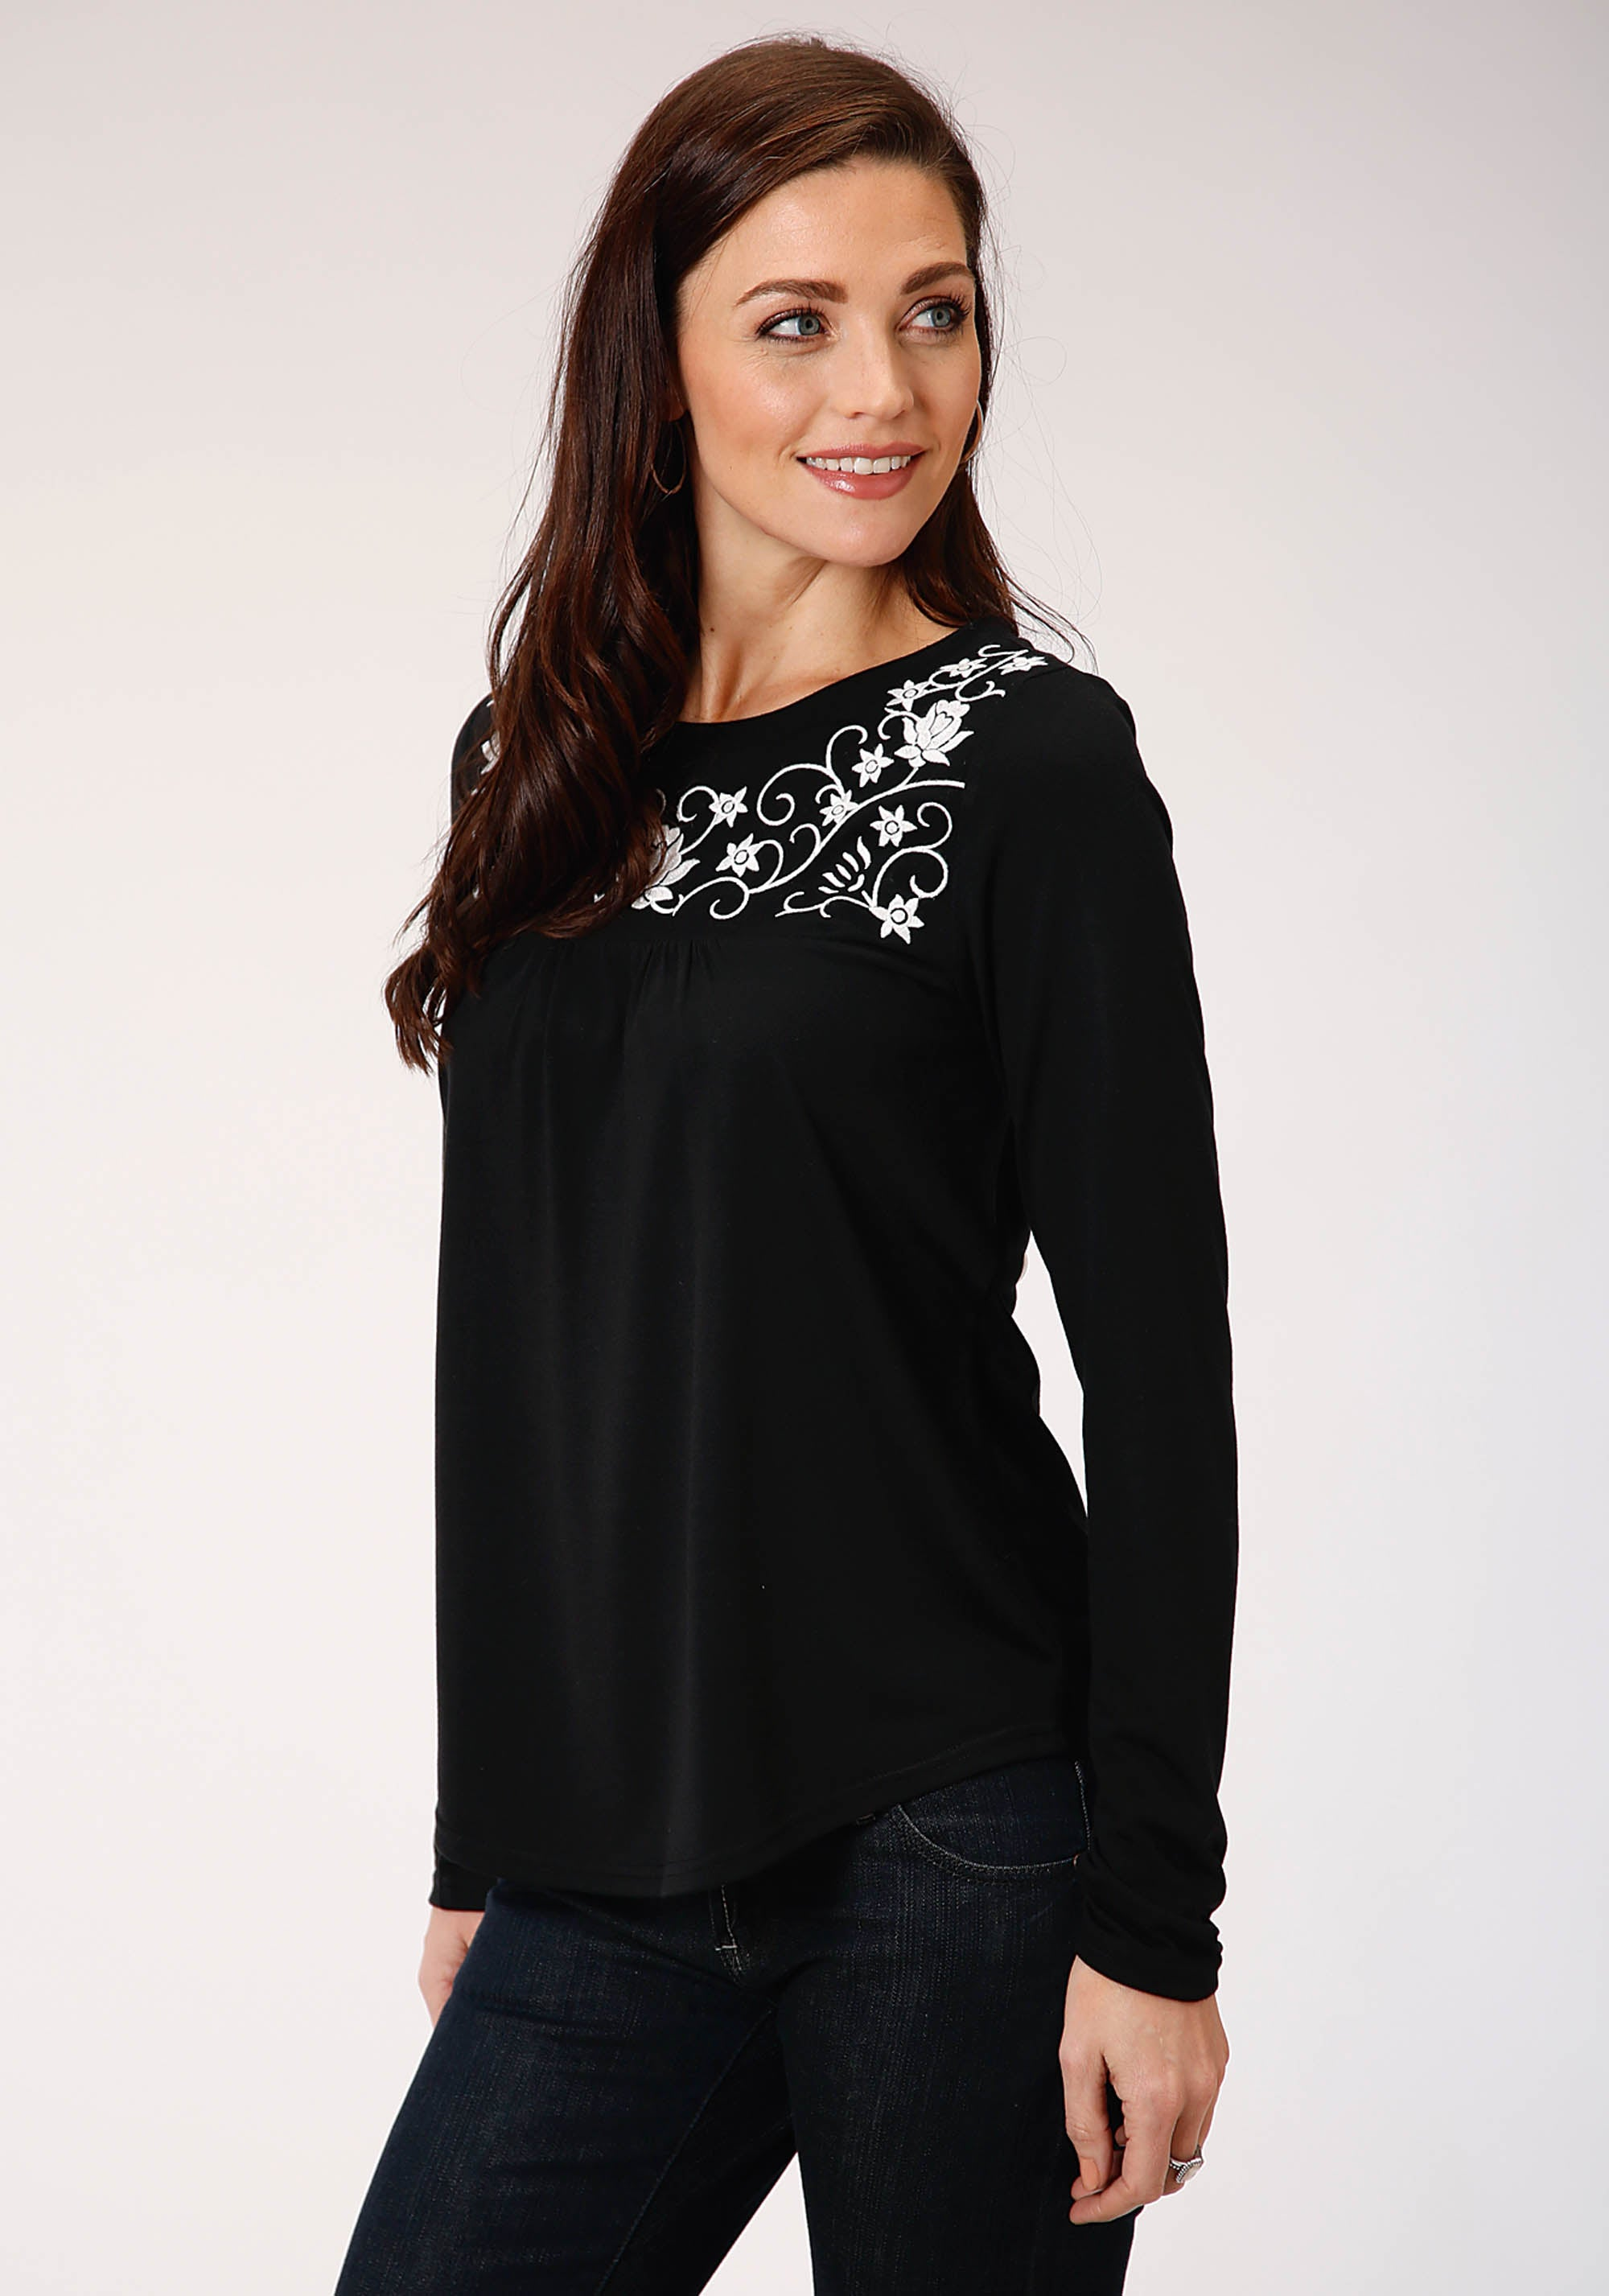 ROPER WOMENS BLACK 00380 POLY RAYON JERSEY TOP STUDIO WEST- THE WILD SIDE LONG SLEEVE